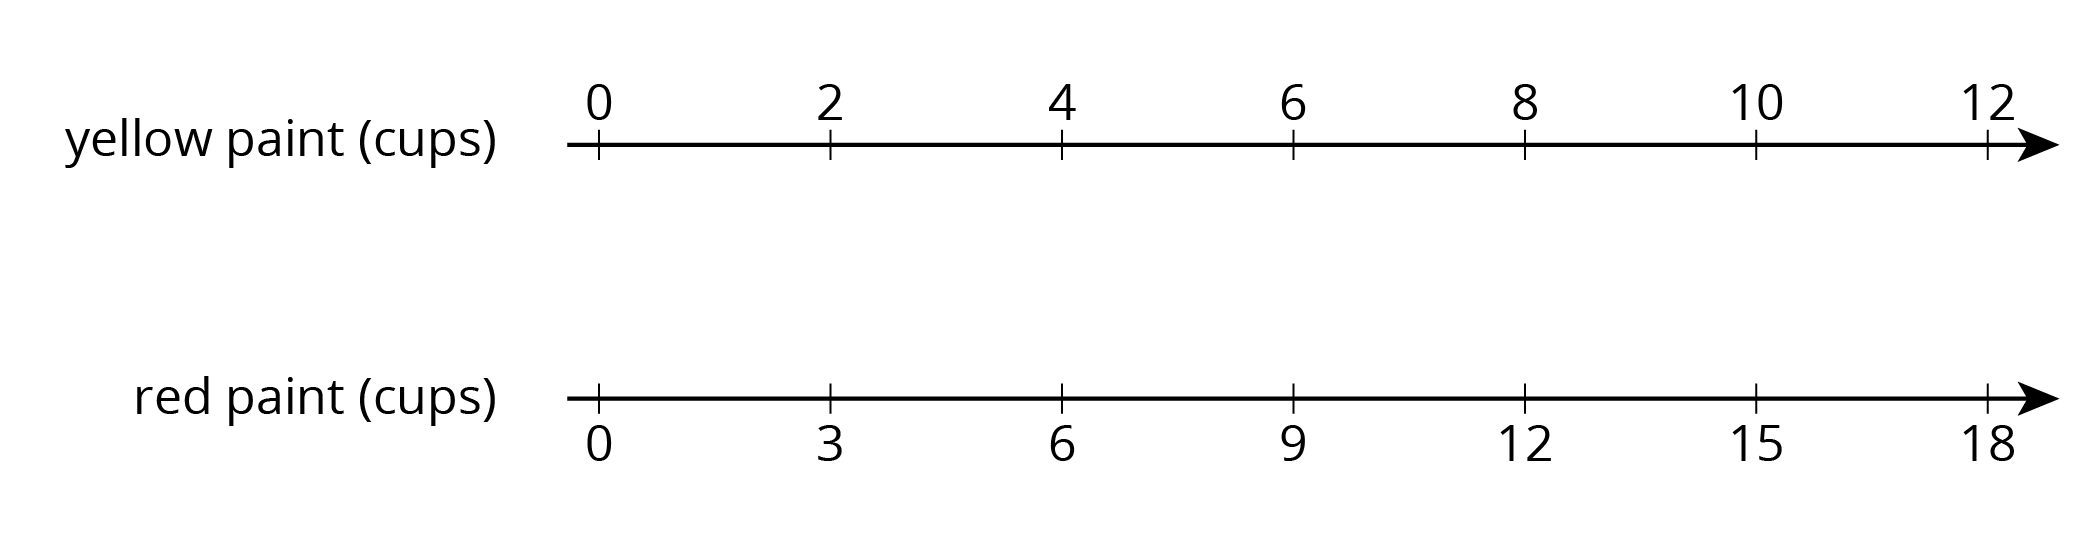 "A double number line with 7 evenly spaced tick marks.   The top number line is labeled ""yellow paint in cups"" and starting with the first tick mark 0, 2, 4, 6, 8, 10 and 12 are labeled.   The bottom number line is labeled ""red paint in cups"" and starting with the first tick mark 0, 3, 6, 9, 12, 15 and 18 are labeled."